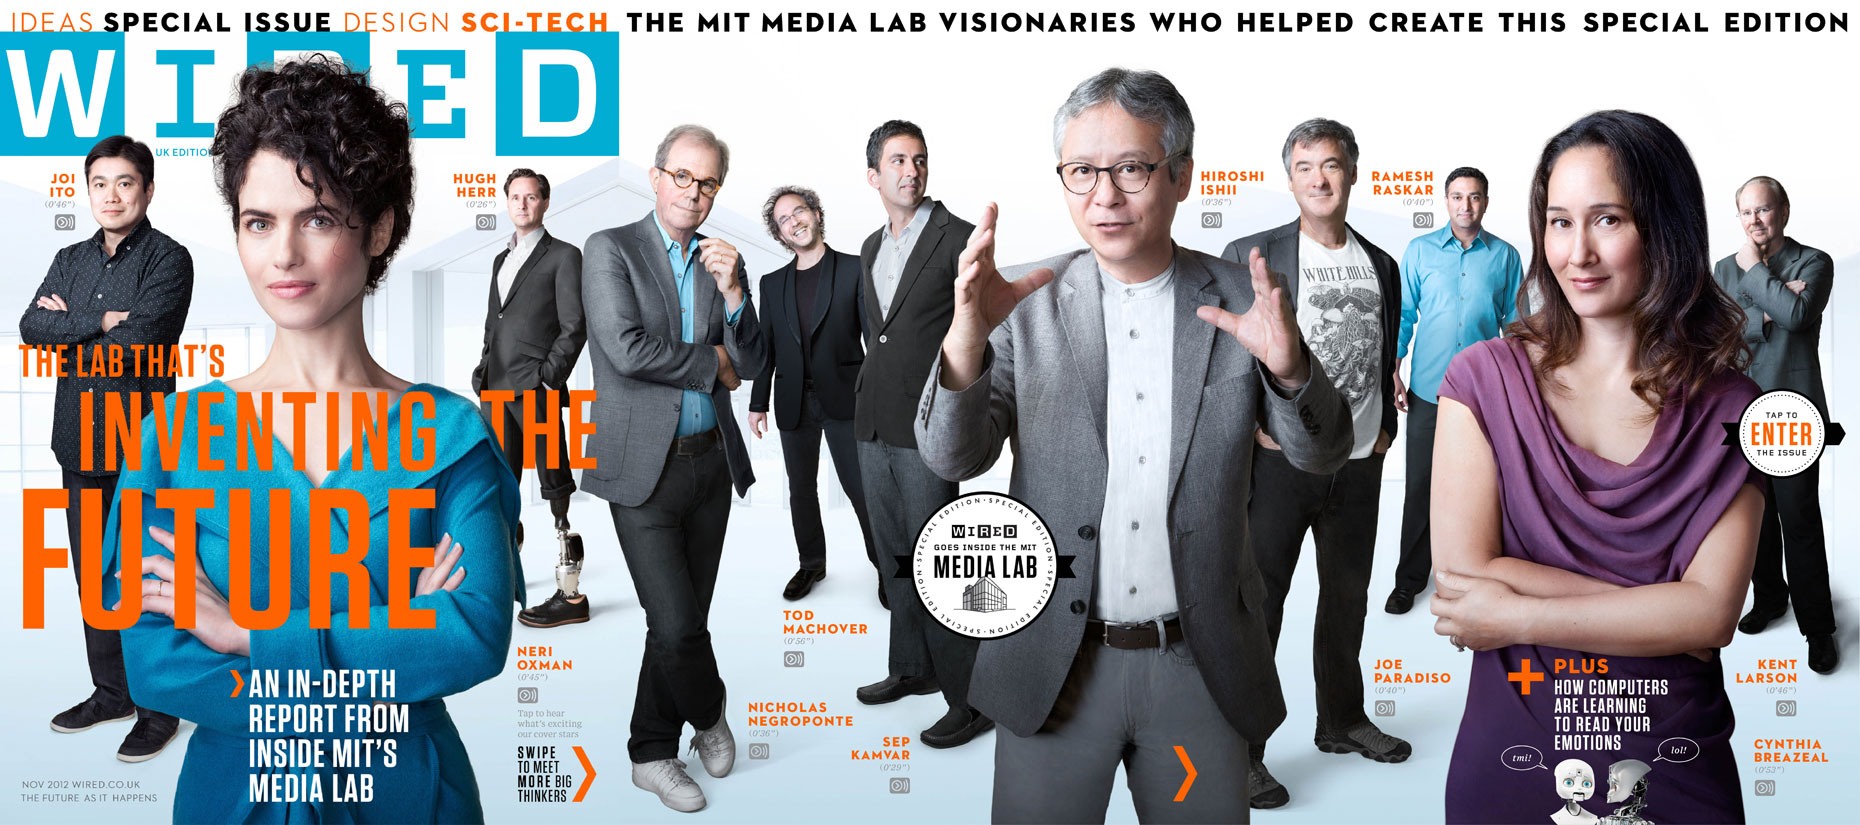 WIRED UK: The MIT MEDIA LAB. November 2012 issue